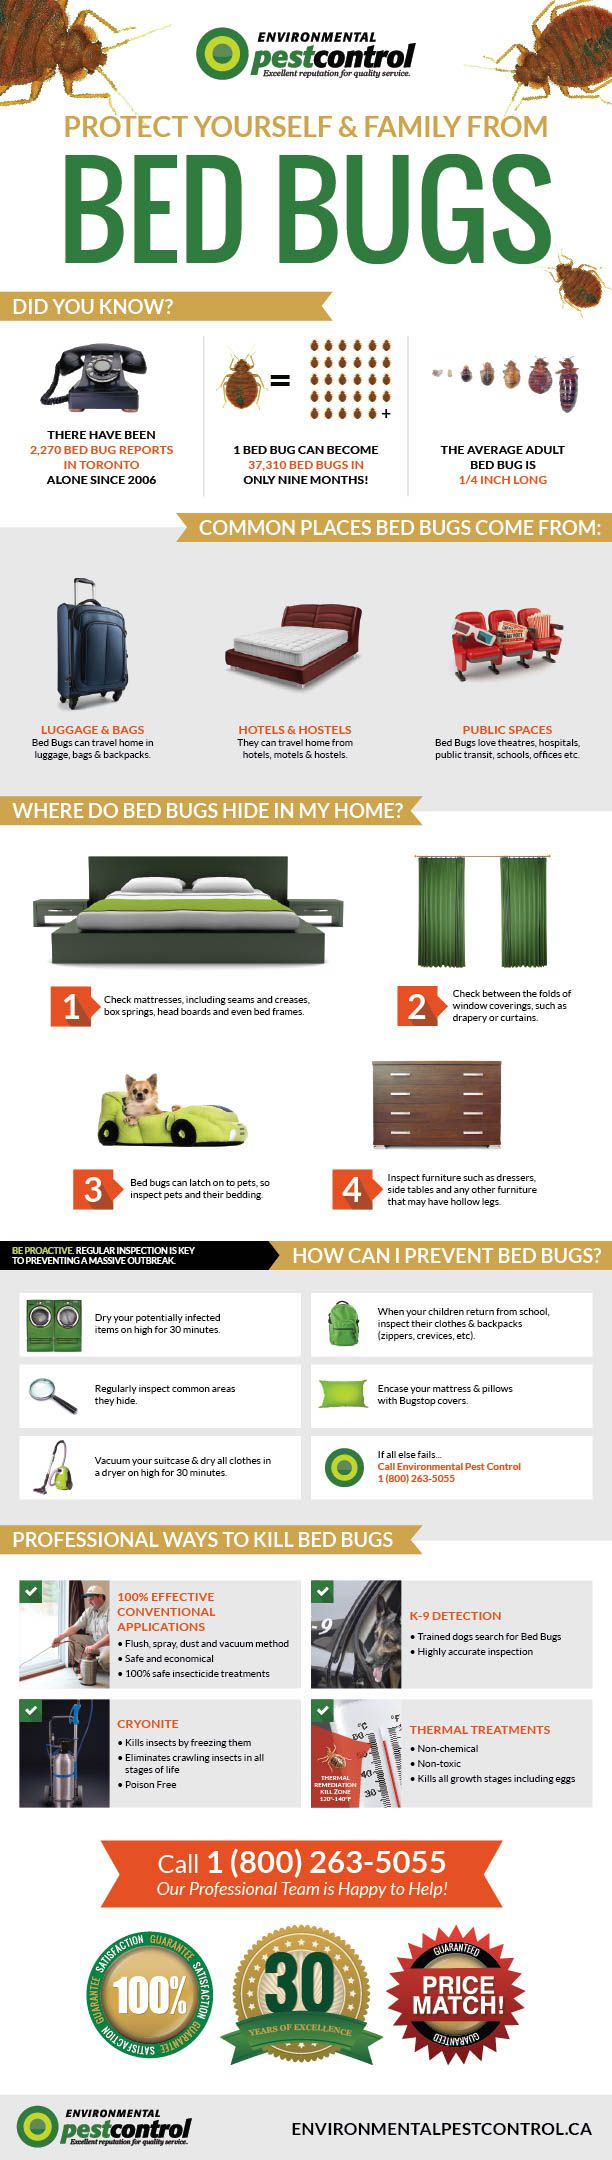 Infographic about getting rid of and killing bed bugs with a pest control exterminator